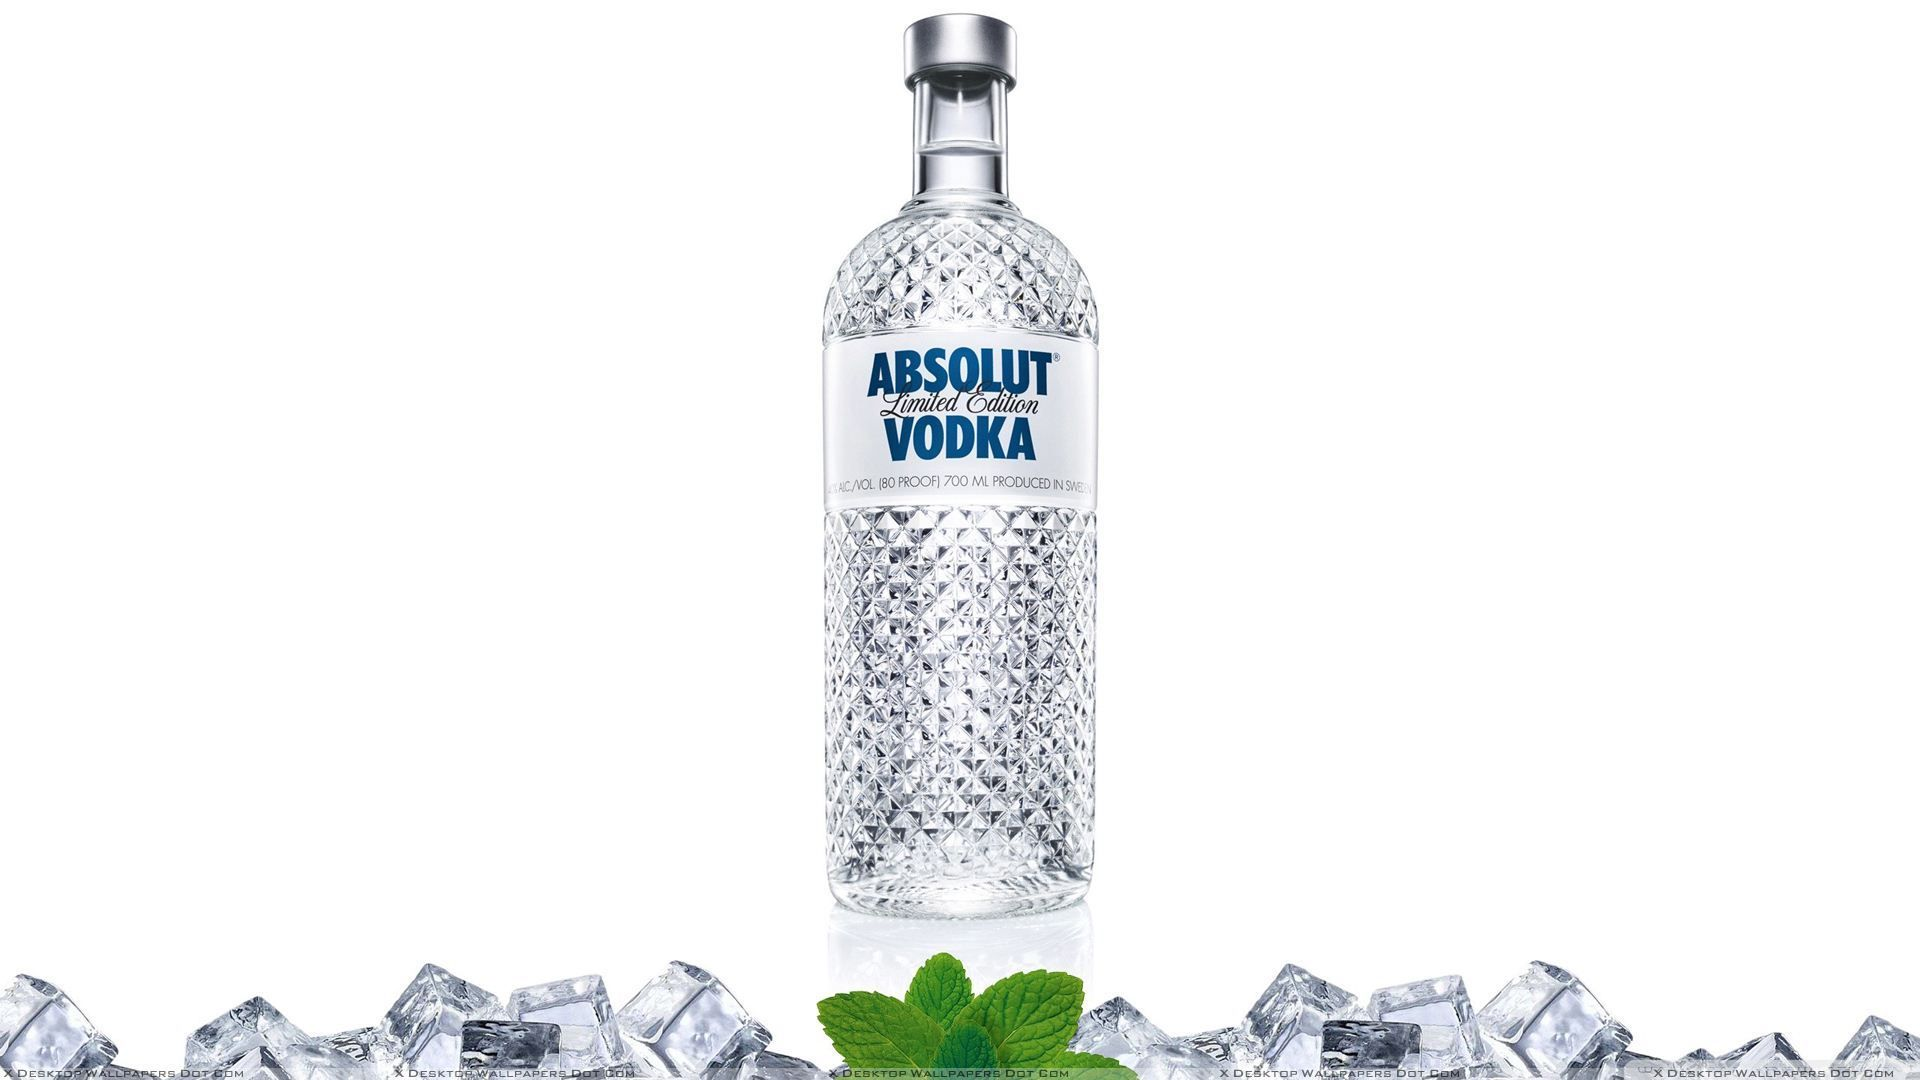 A Bottle Of Absolut Vodka, Vodka Art